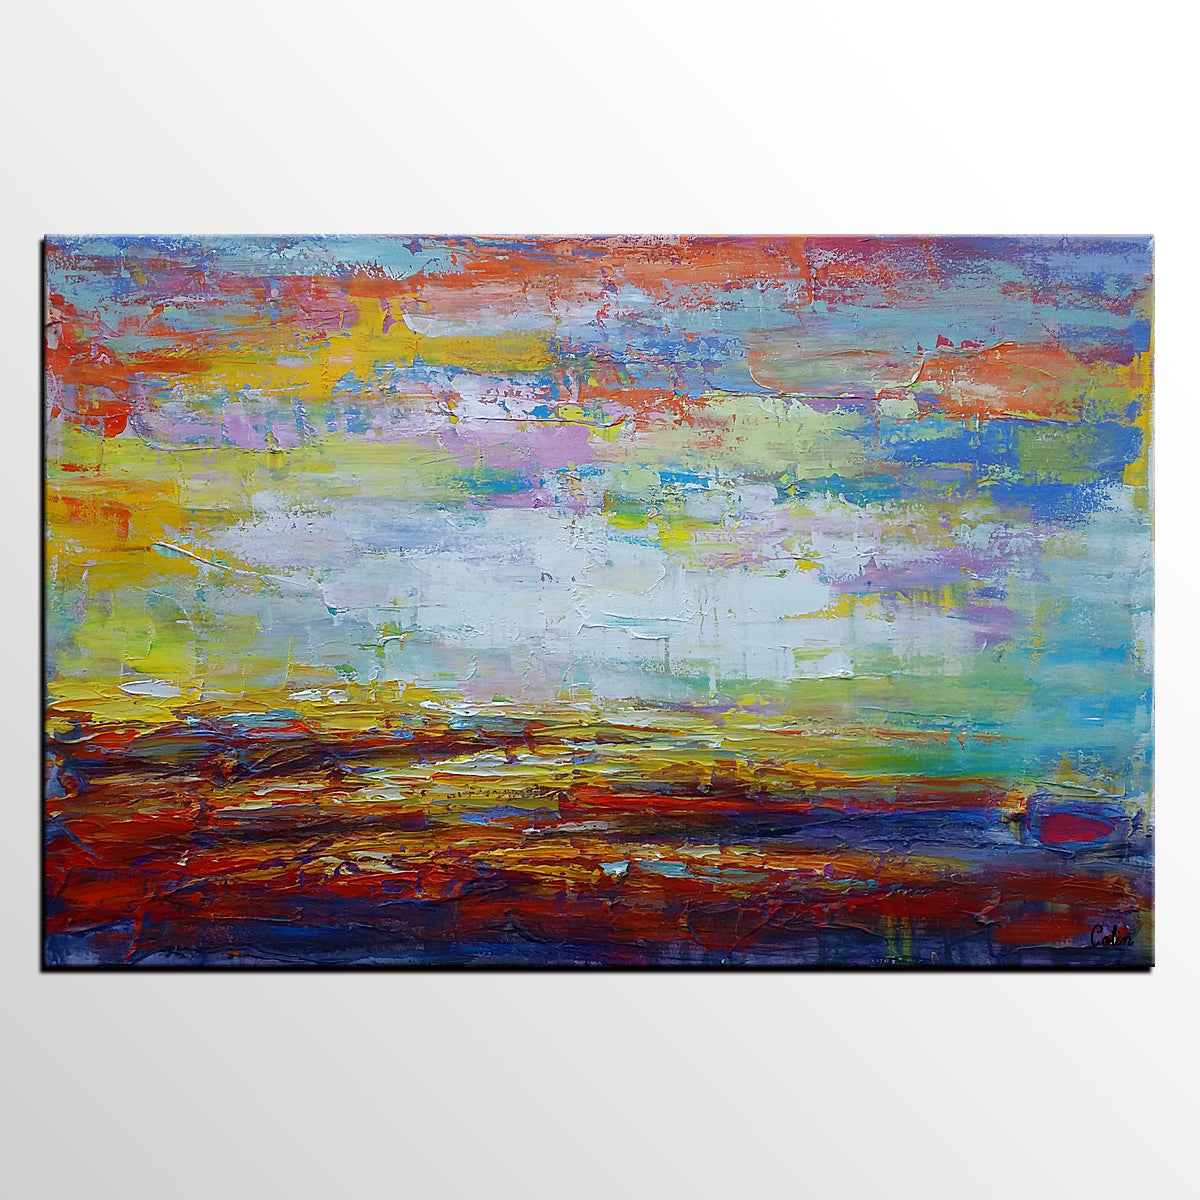 Home Art, Original Wall Art, Landscape Pain...